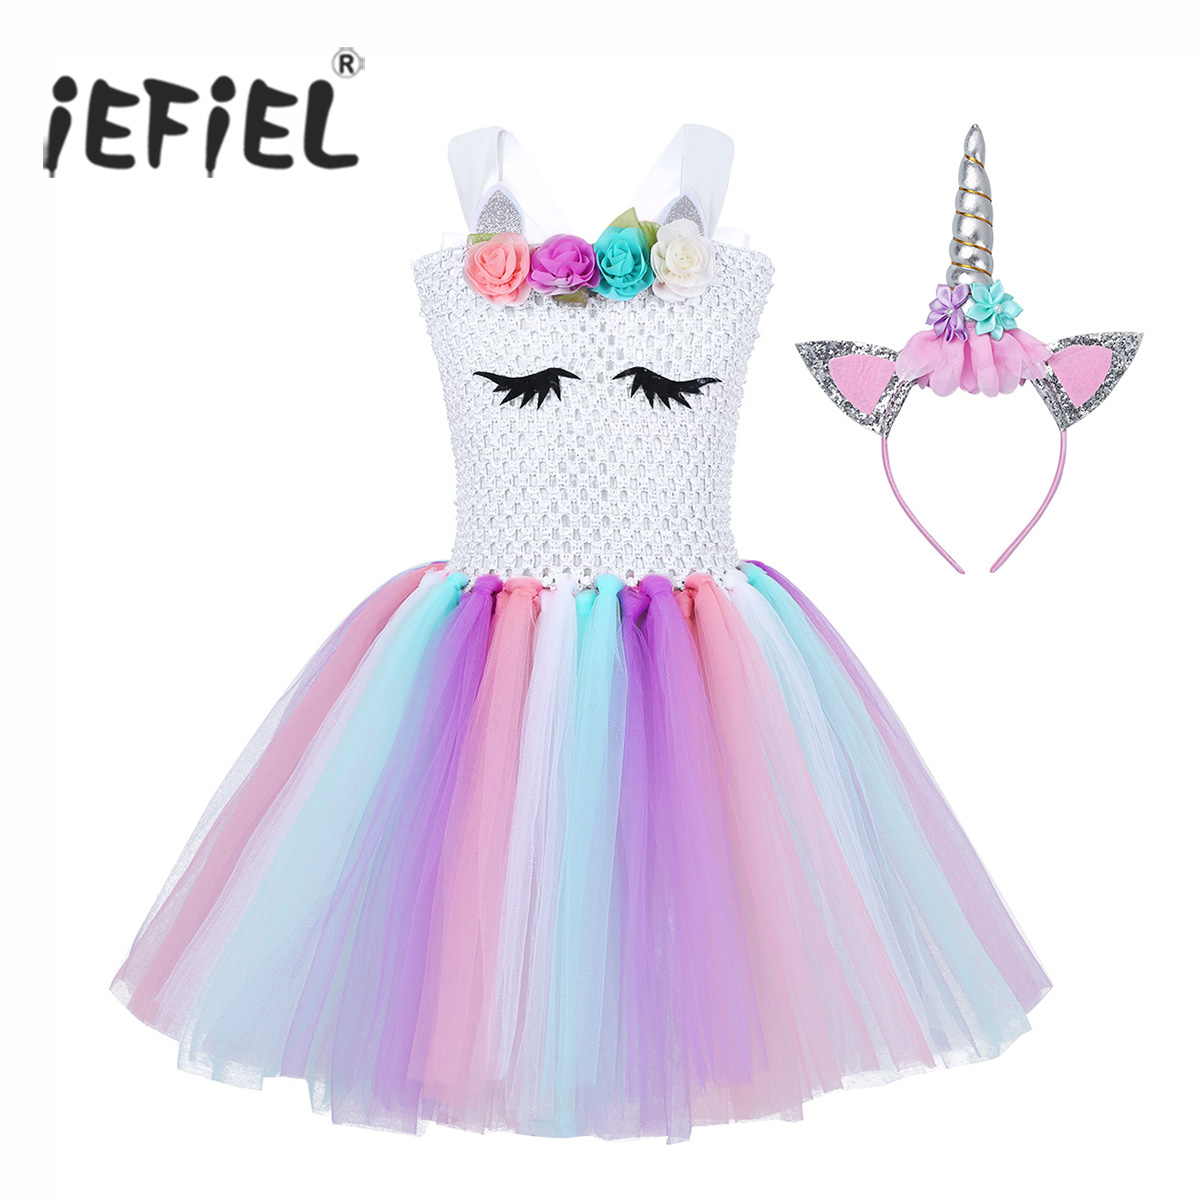 Baby Kid Girls Cartoon Carnival Birthday Party Costume Ballet Tutu Skirt Outfits